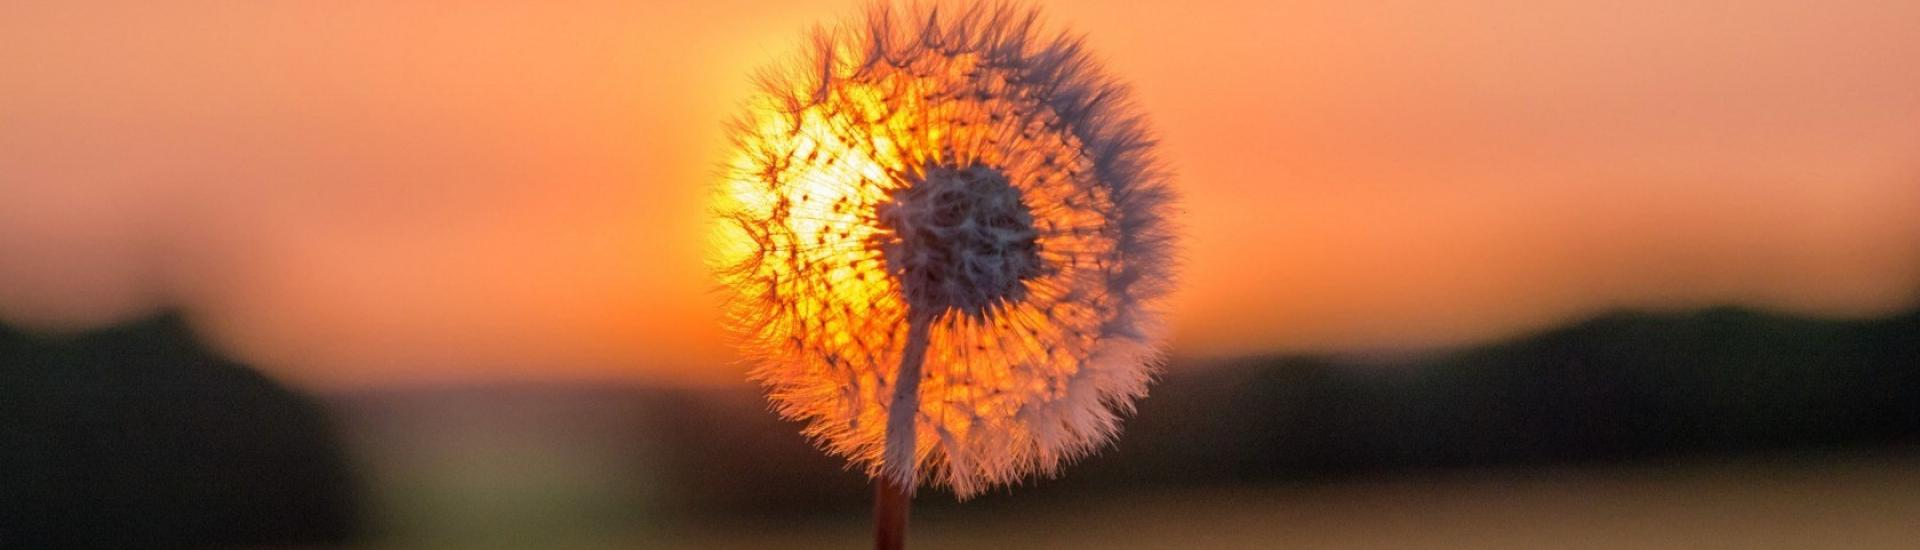 files/Dandelions/Plant-Sky-Sunset-Dandelion.jpg